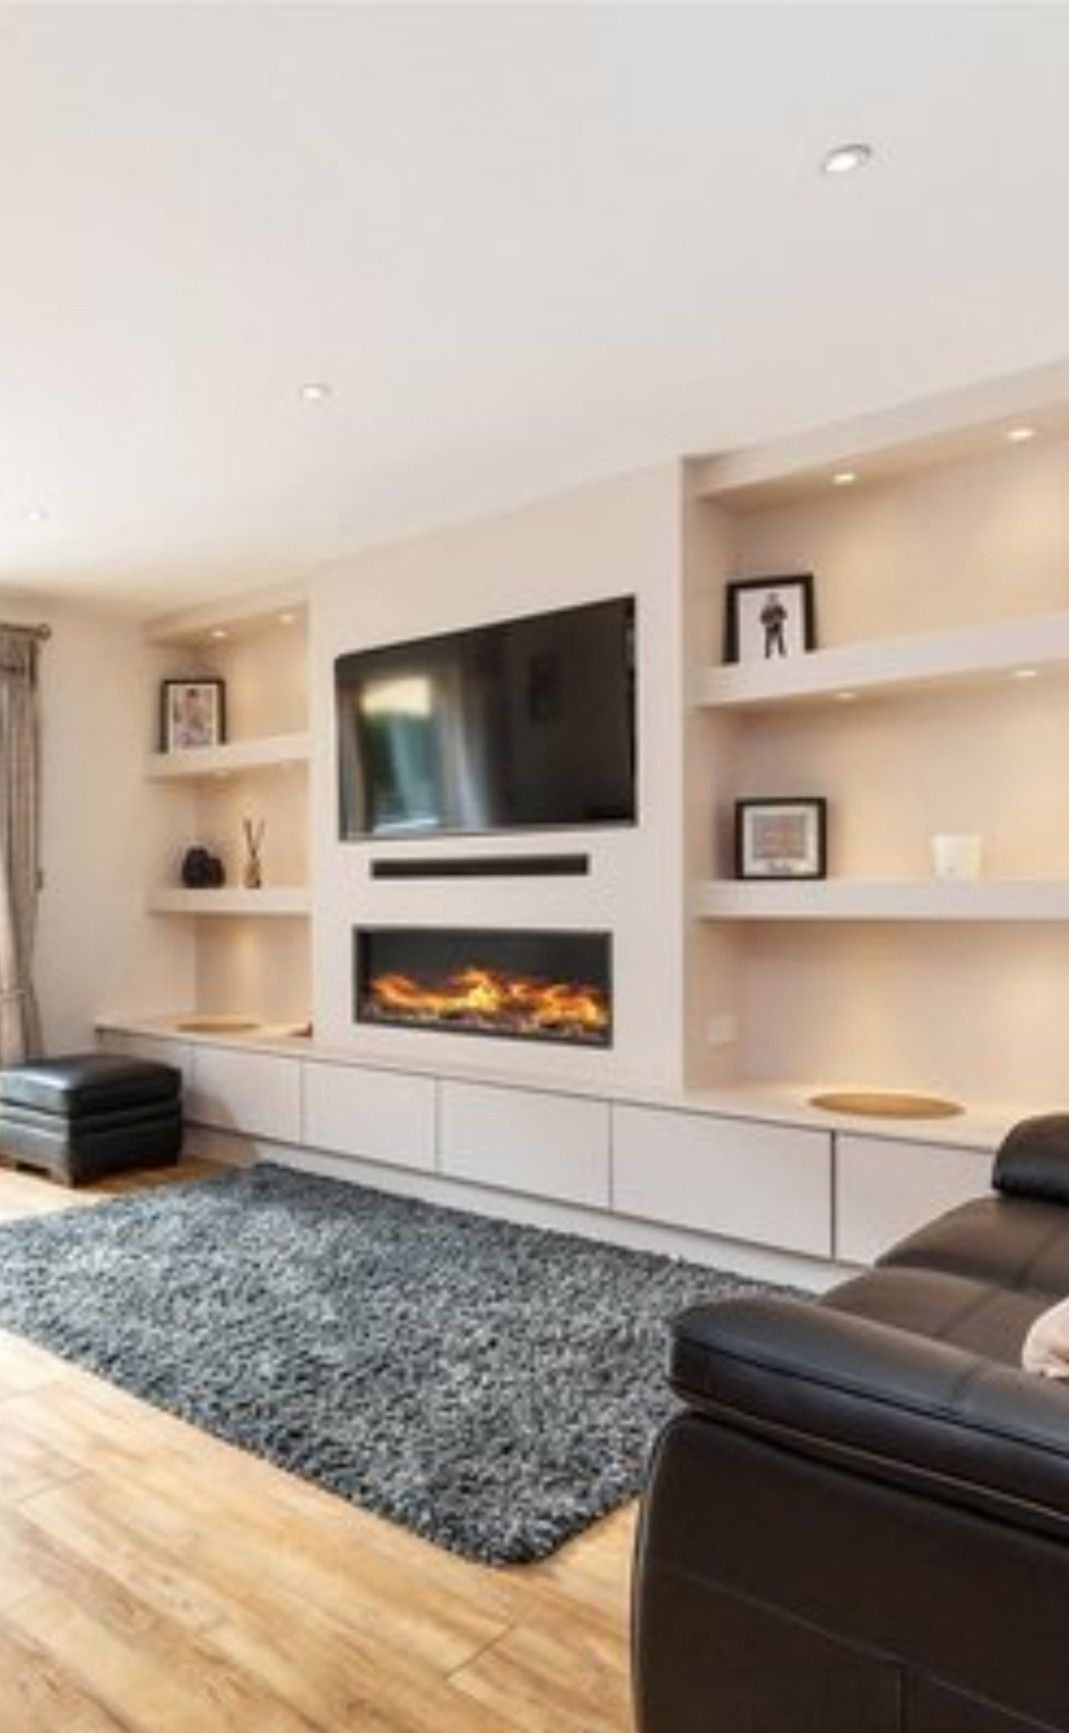 Fireplace Tv And Shelving Built In Shelves Living Room Living Room Decor Fireplace Living Room Built Ins